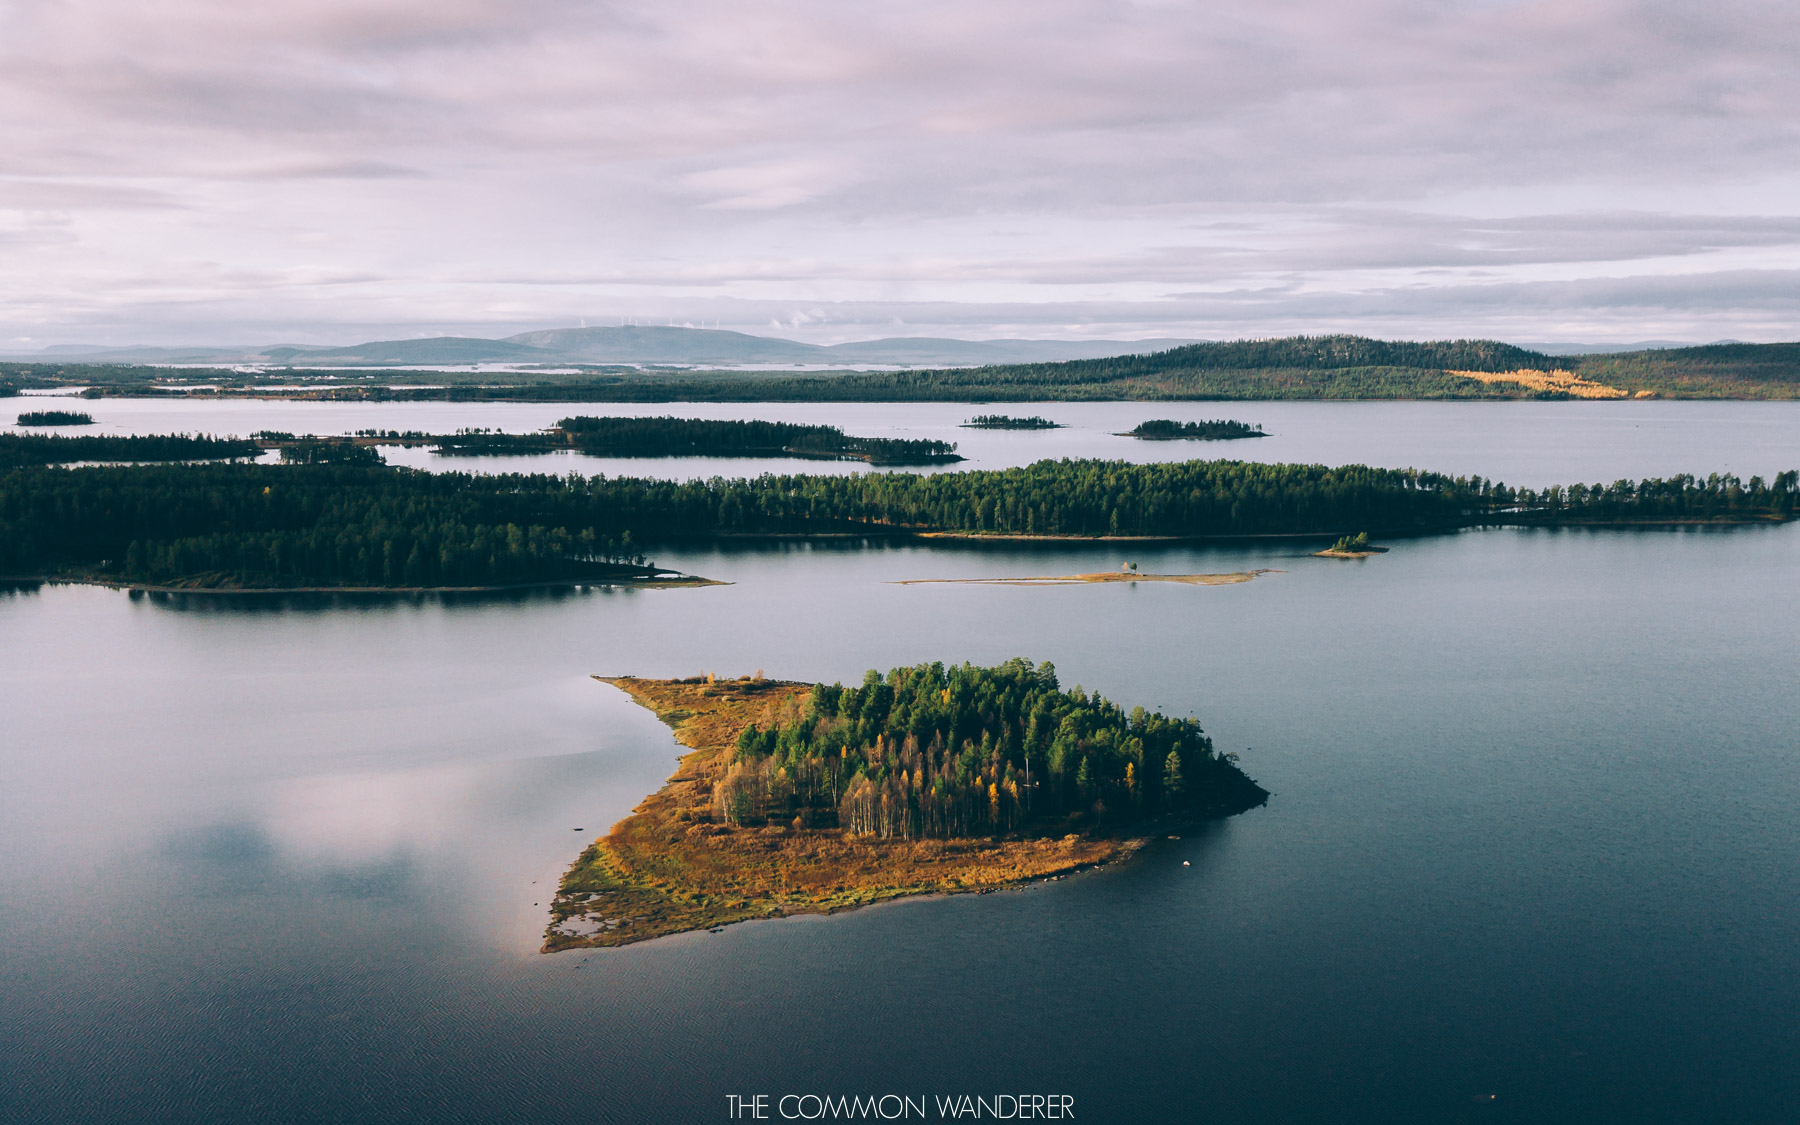 The Common Wanderer: Year in review - Swedish Lapland drone shot over the lakes